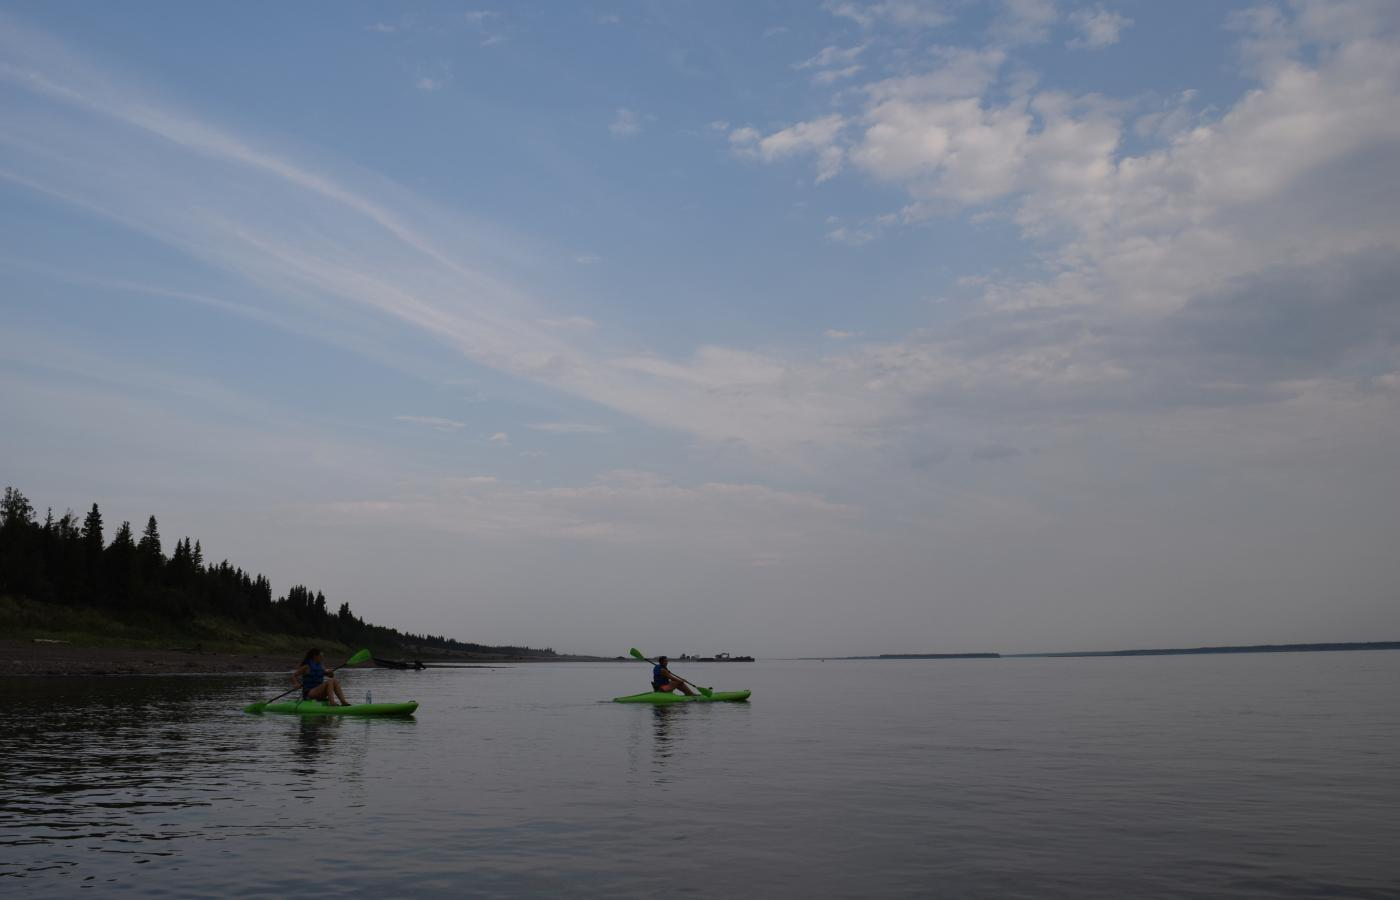 Canoe adventures in the Sahtu region of the NWT.